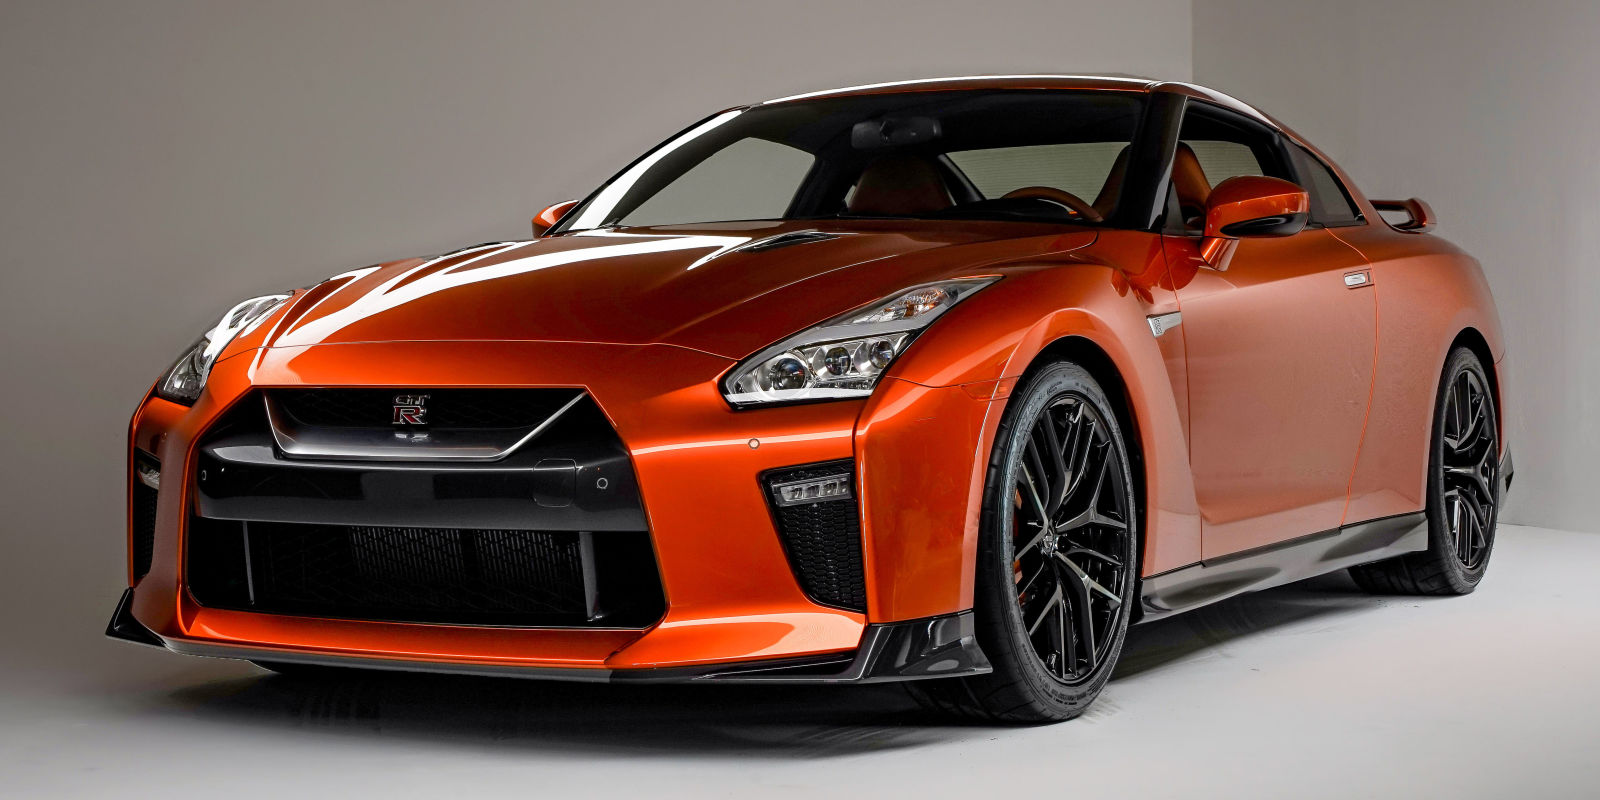 2017 nissan gt r an aging godzilla gets a new nose and 565 hp. Black Bedroom Furniture Sets. Home Design Ideas